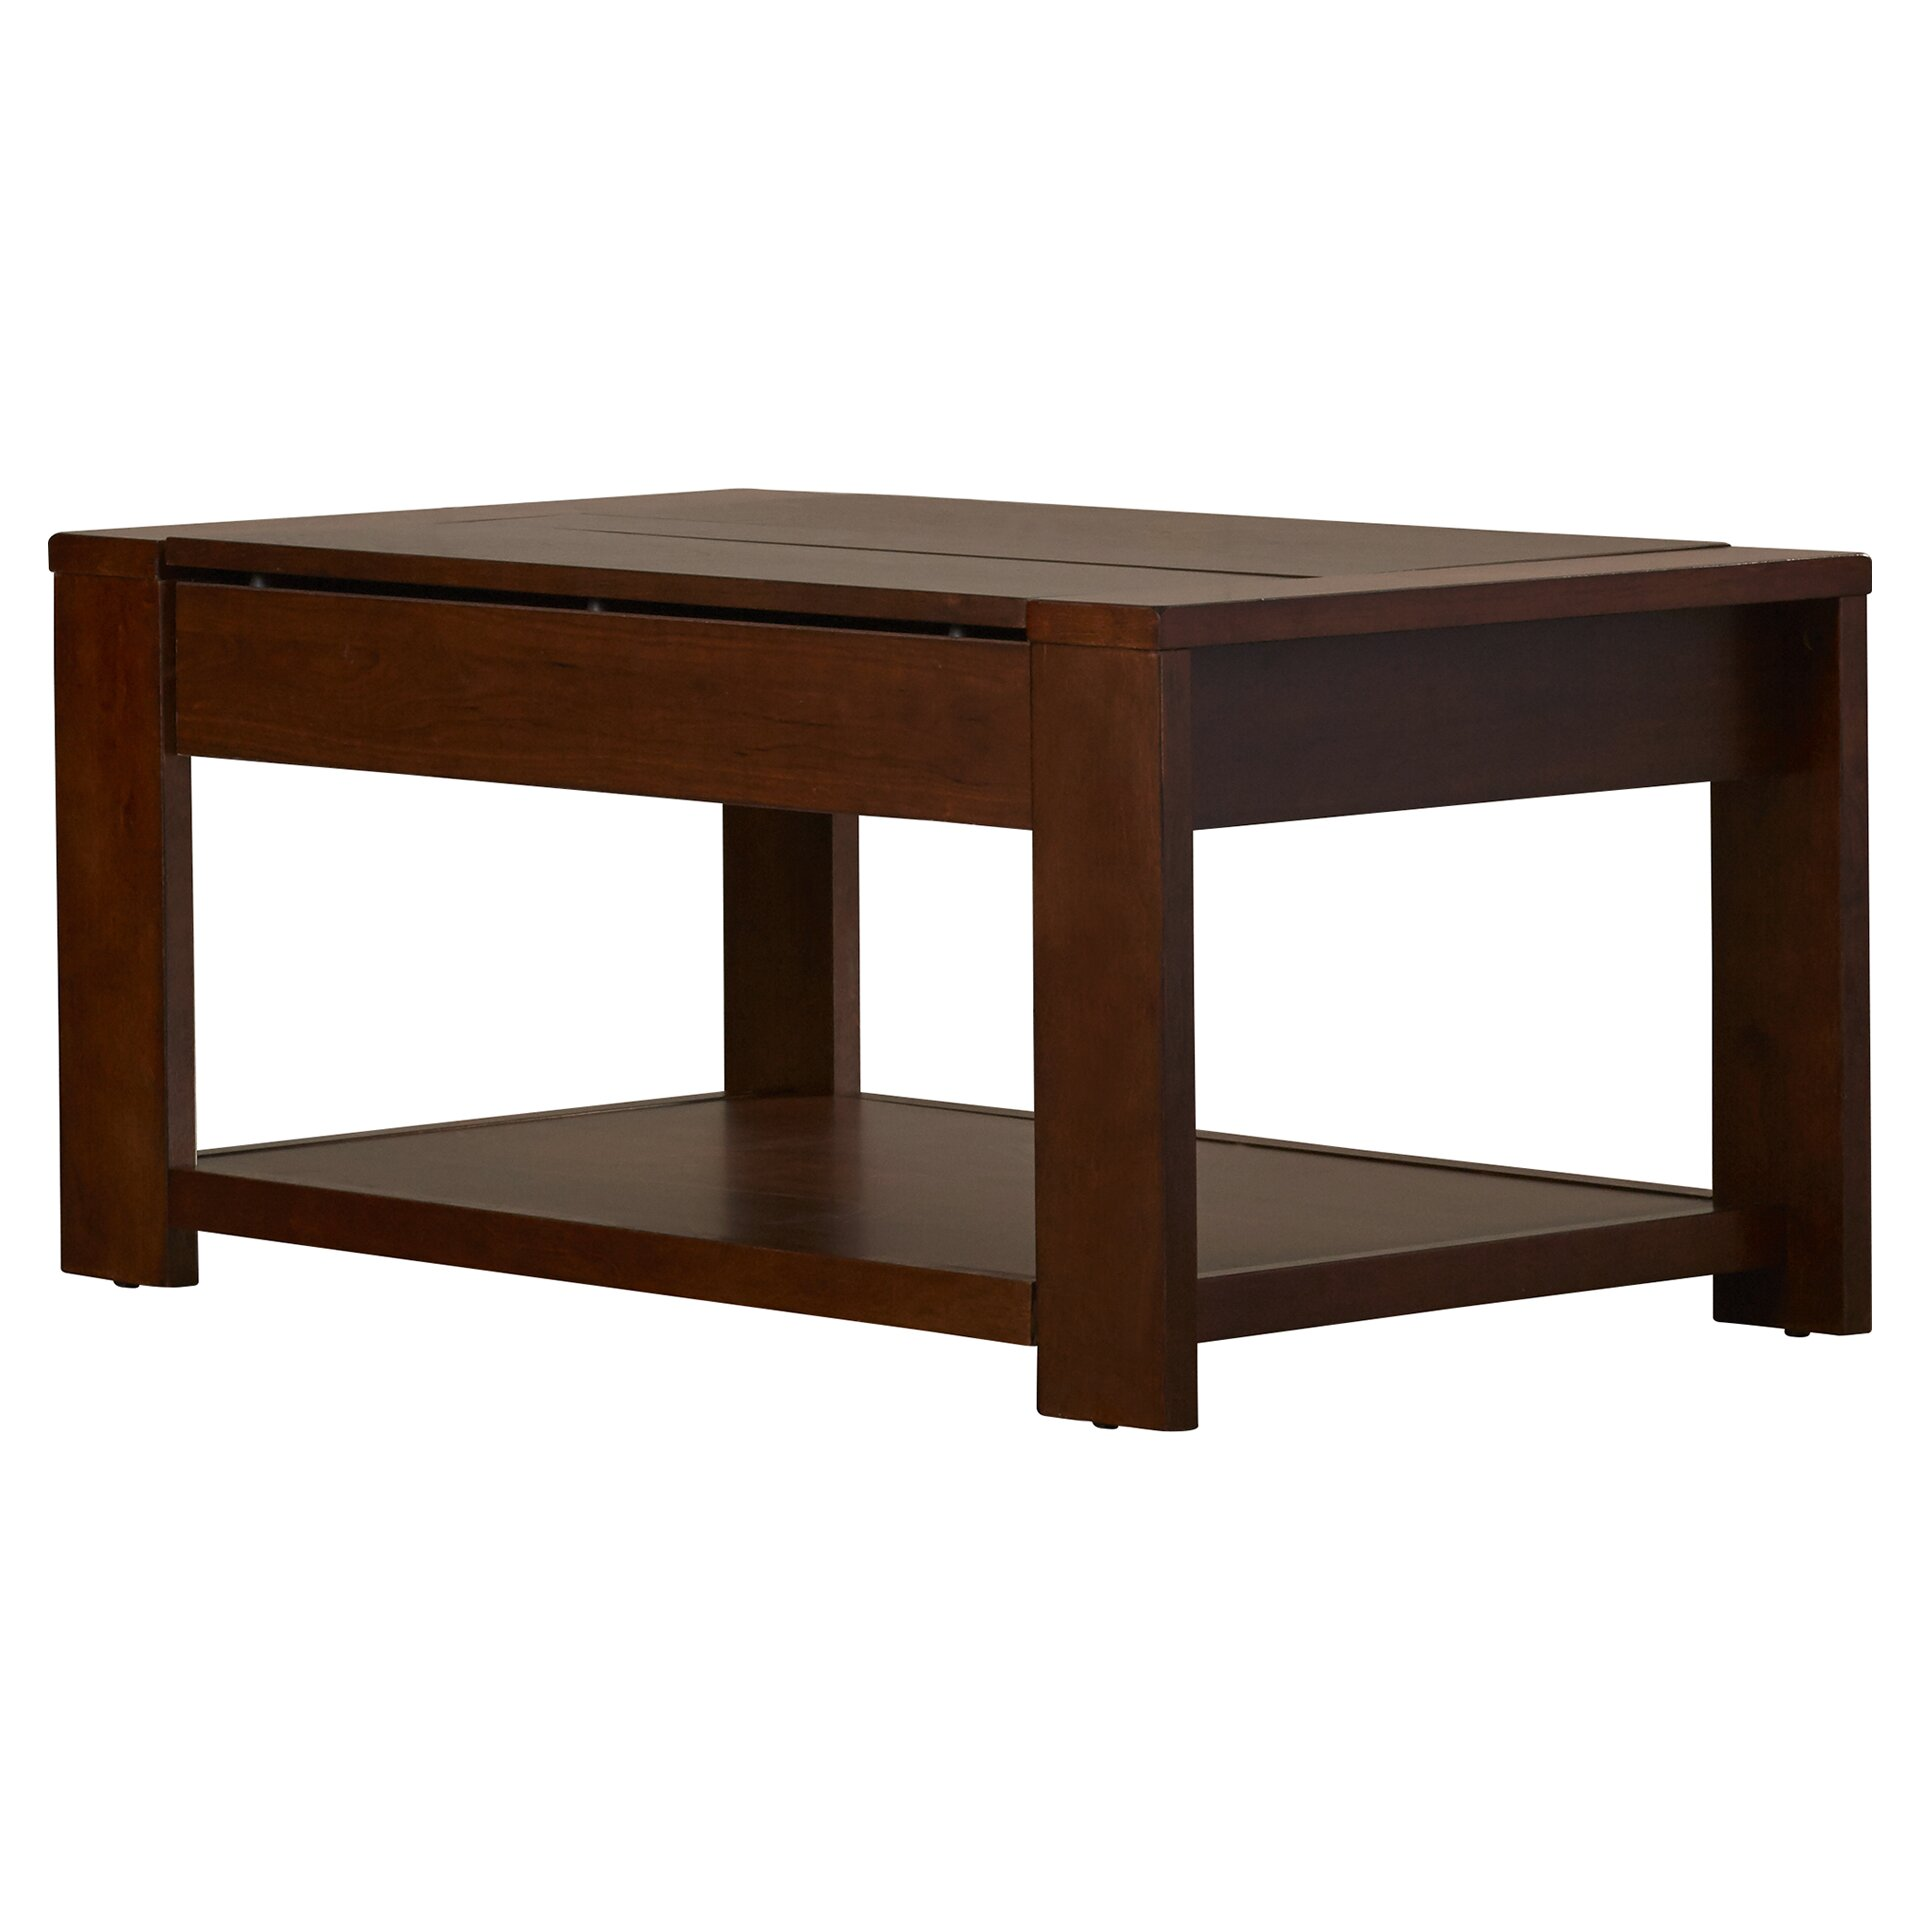 August Grove Taylor Coffee Table With Lift Top Reviews Wayfair